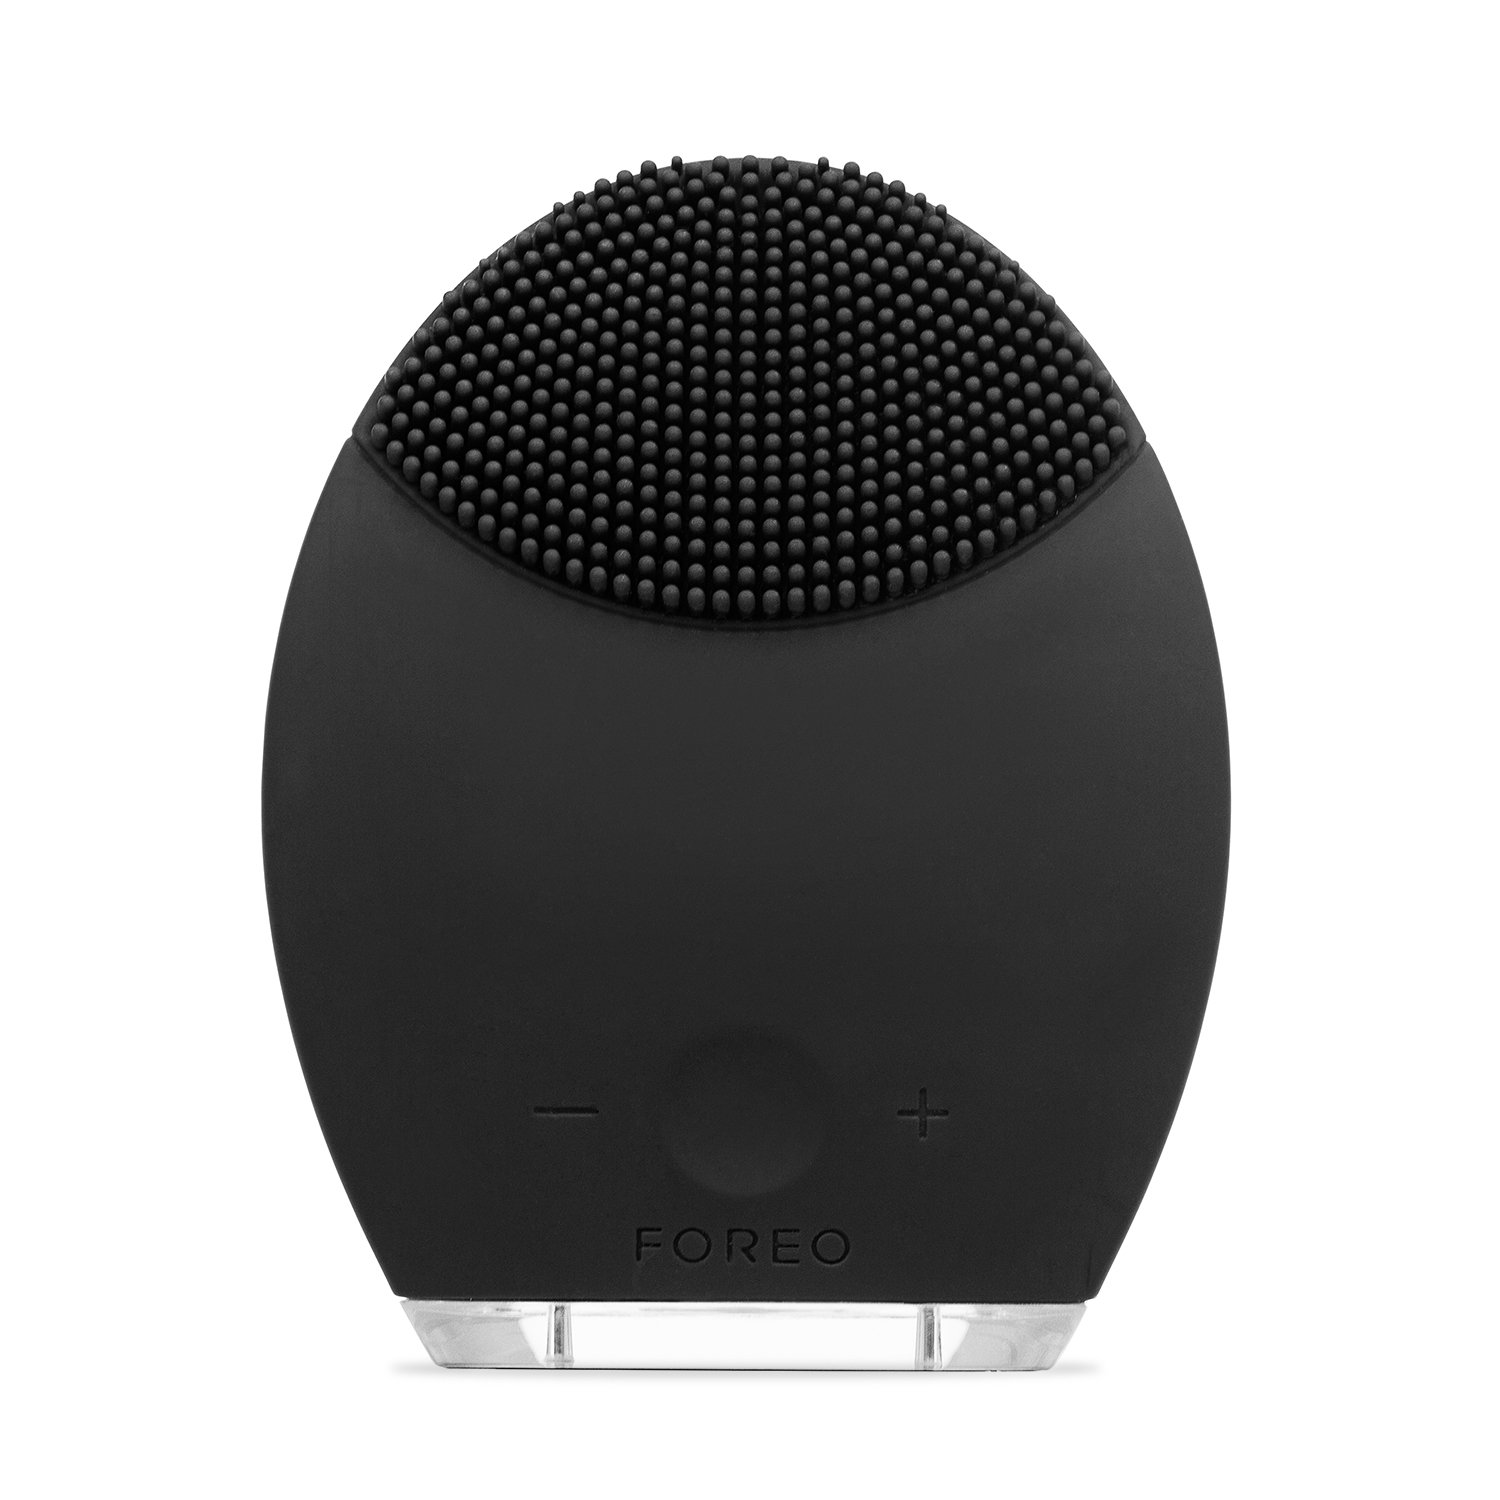 FOREO LUNA Silicone Cleansing Brush and Preshave Device for Men, Black